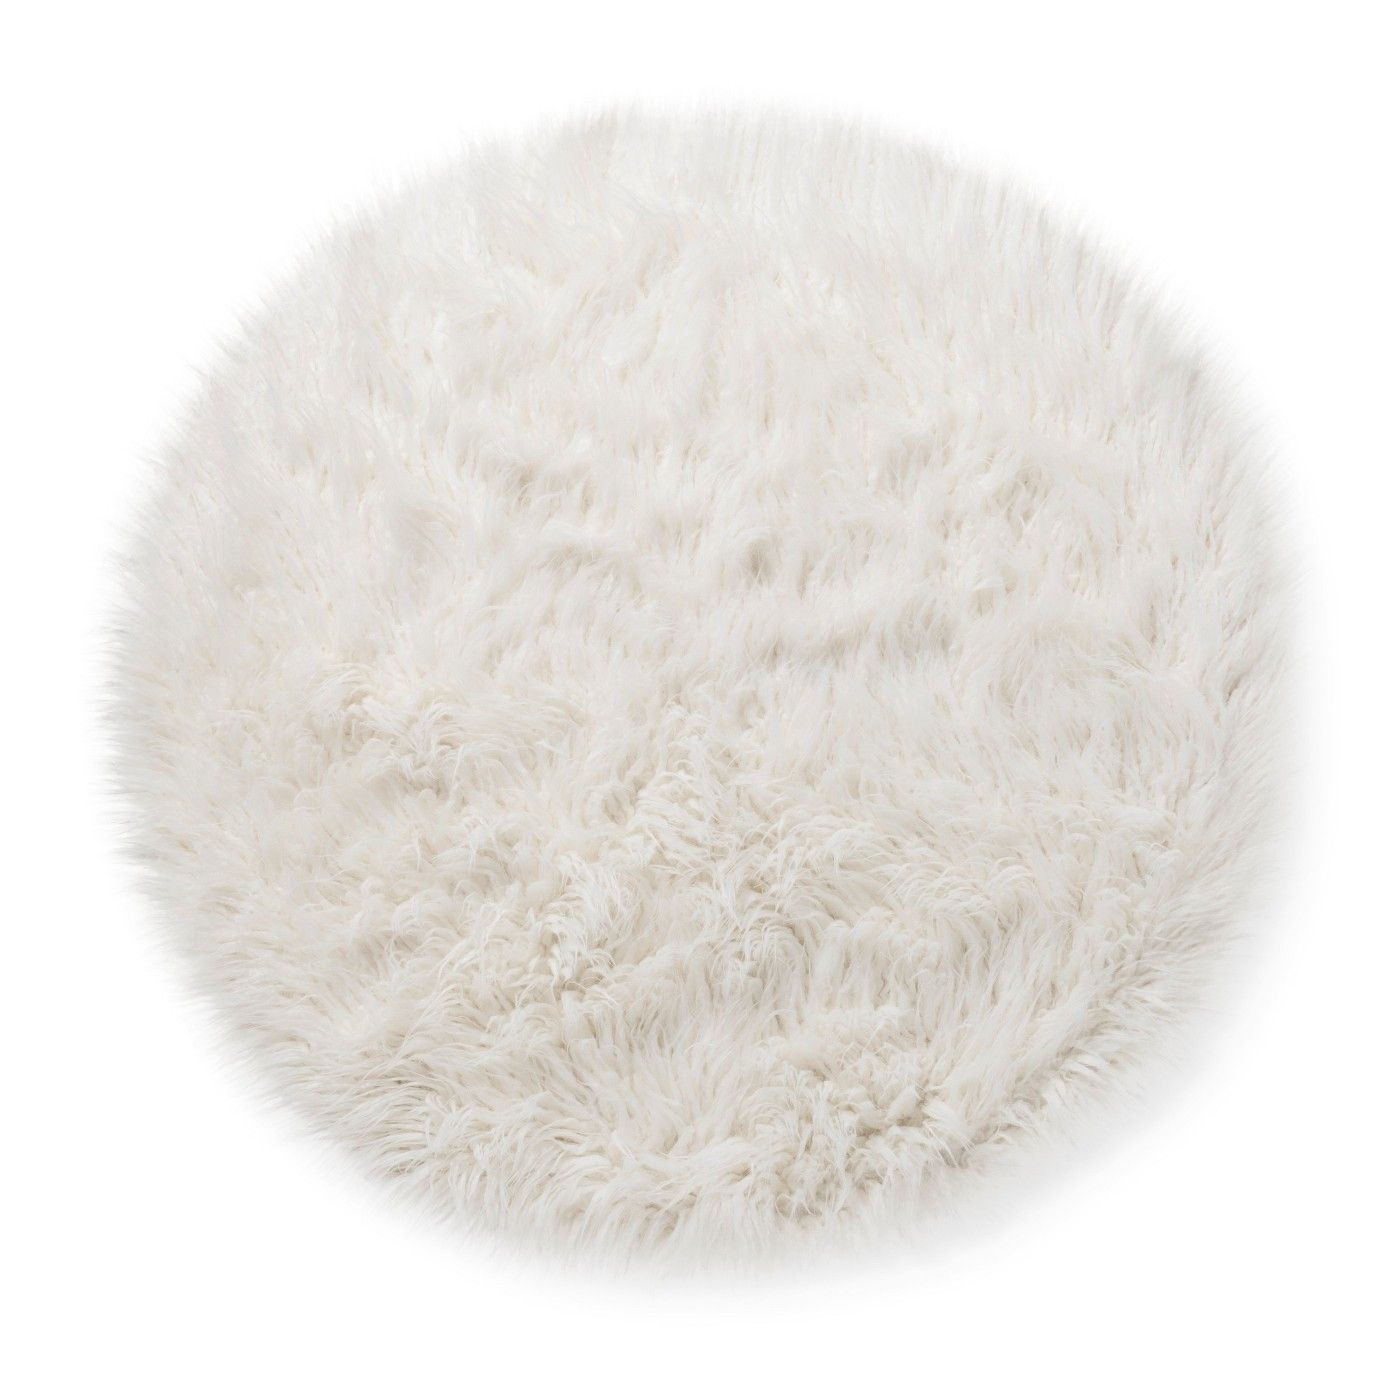 Faux Fur Round Area Rug Champagne 4-Feet Shaggy Carpet Fluffy Kids Play Mat Floor Decor Living Room Bedroom No Shedding Hypoallergenic Non-Slip Durable